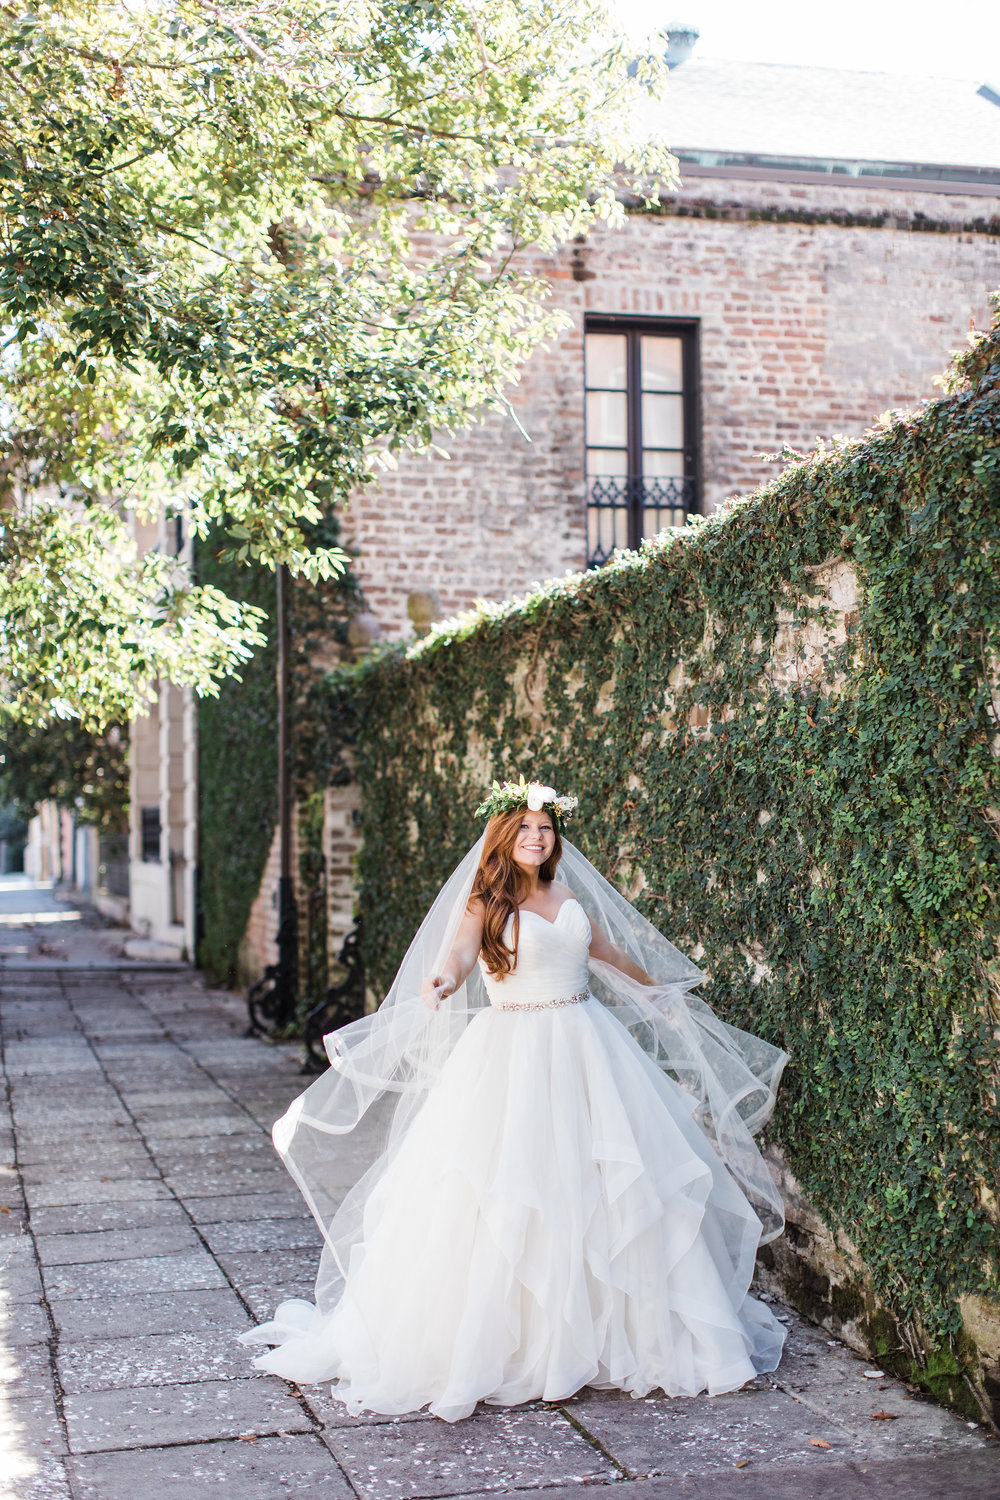 apt-b-photography-mary-elizabeths-bridal-boutique-adele-amelia-accessories-morilee-5504-savannah-bridal-boutique-savannah-weddings-savannah-wedding-photographer-savannah-bridal-gowns-savannah-wedding-dresses-historic-savannah-wedding-4.jpg